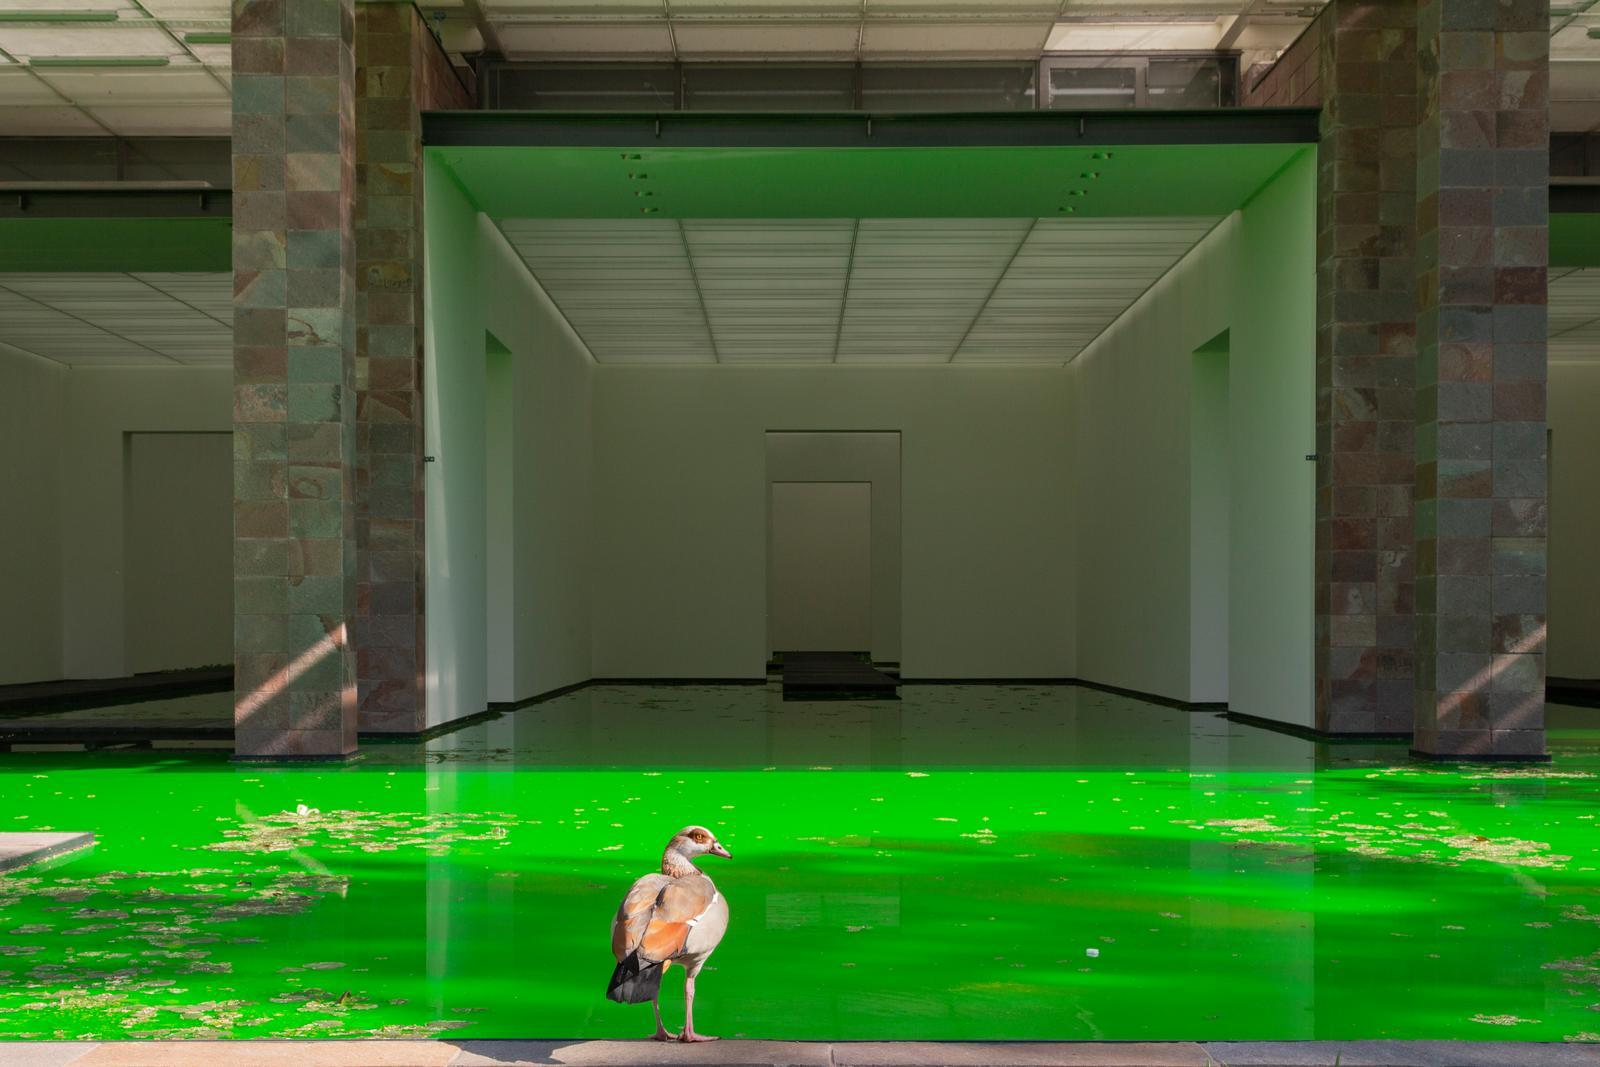 Green water insede a building tat is an open space, non doors and window; a bird in close-up shot